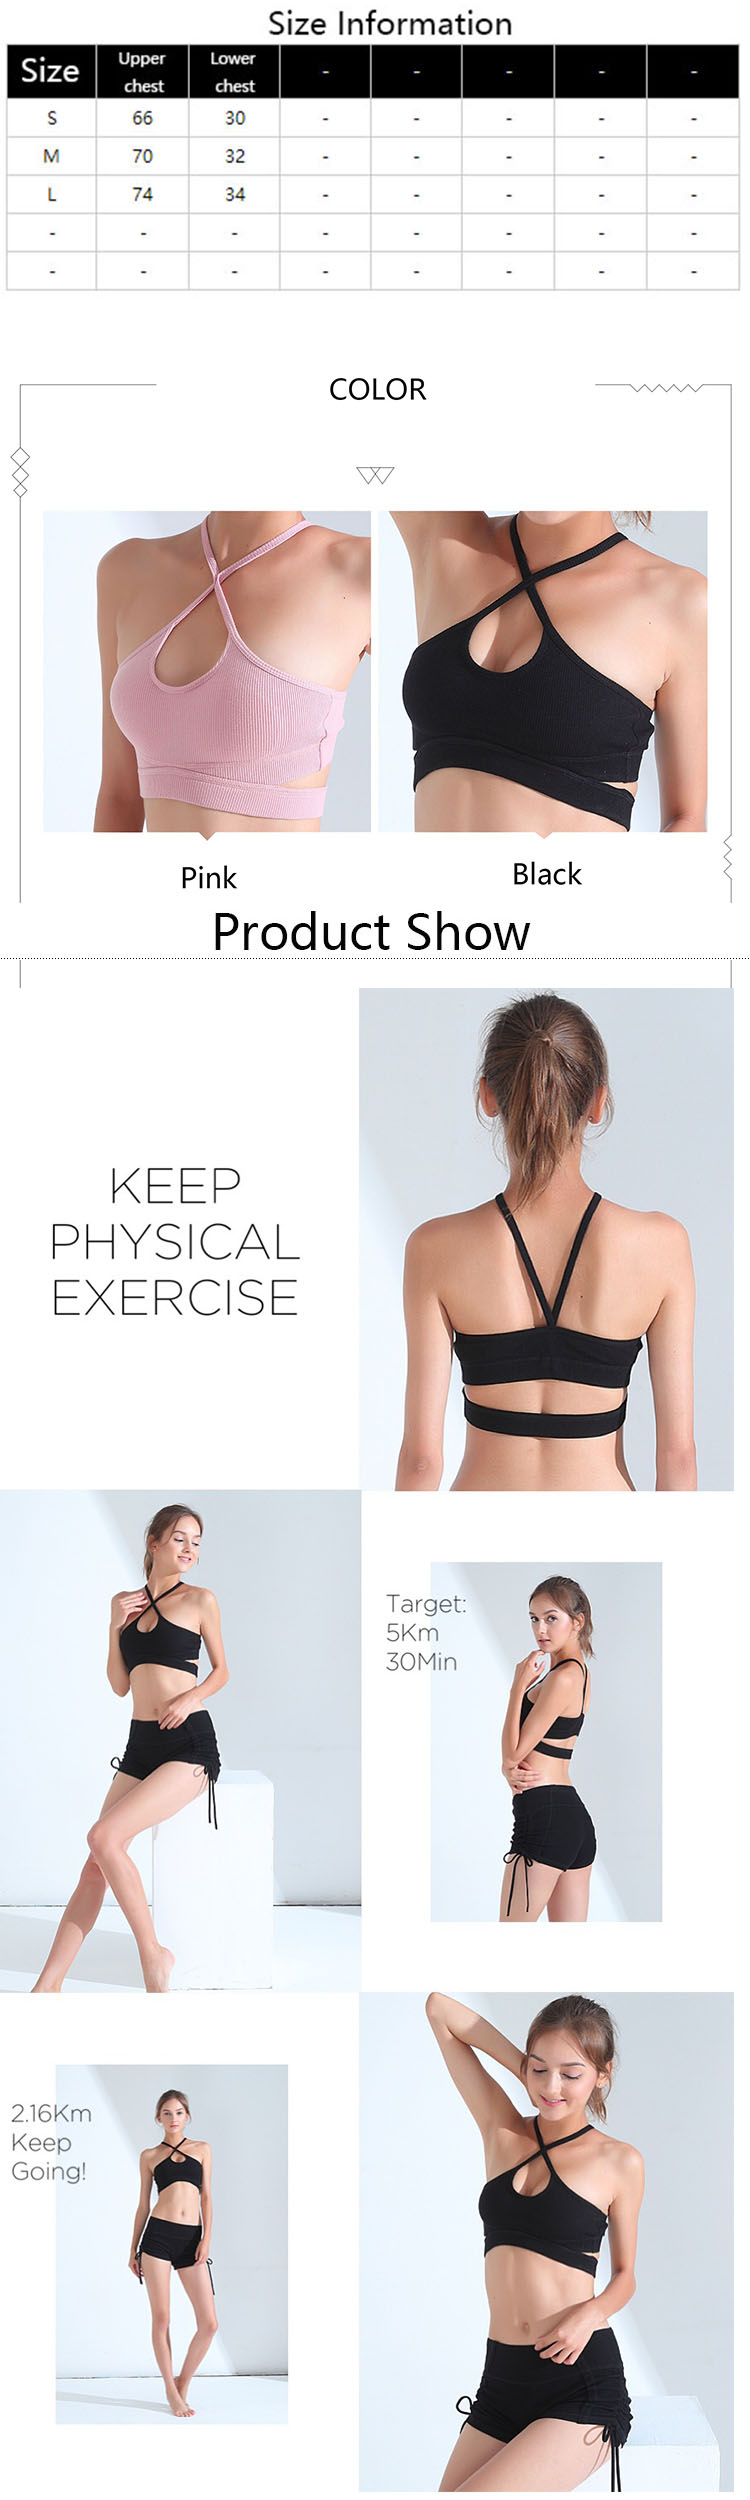 The workout bra uses a steel ring, a non-lineless design